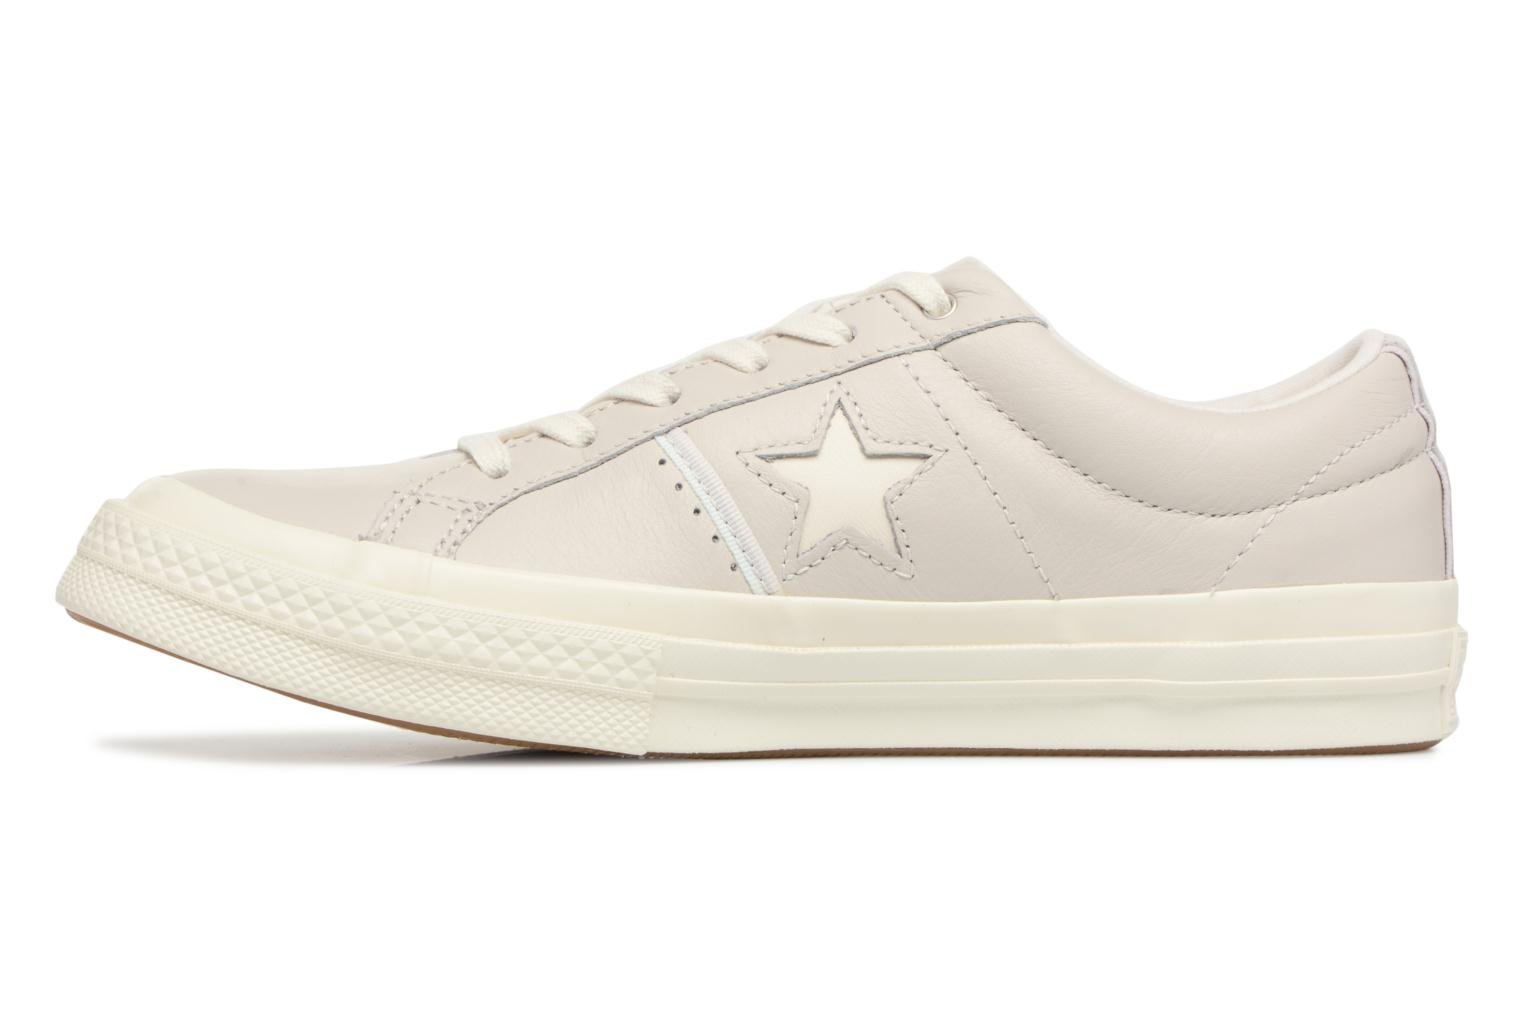 Pale W pale Quartz Pack Piping egret Ox Star Putty One Converse aYZPY